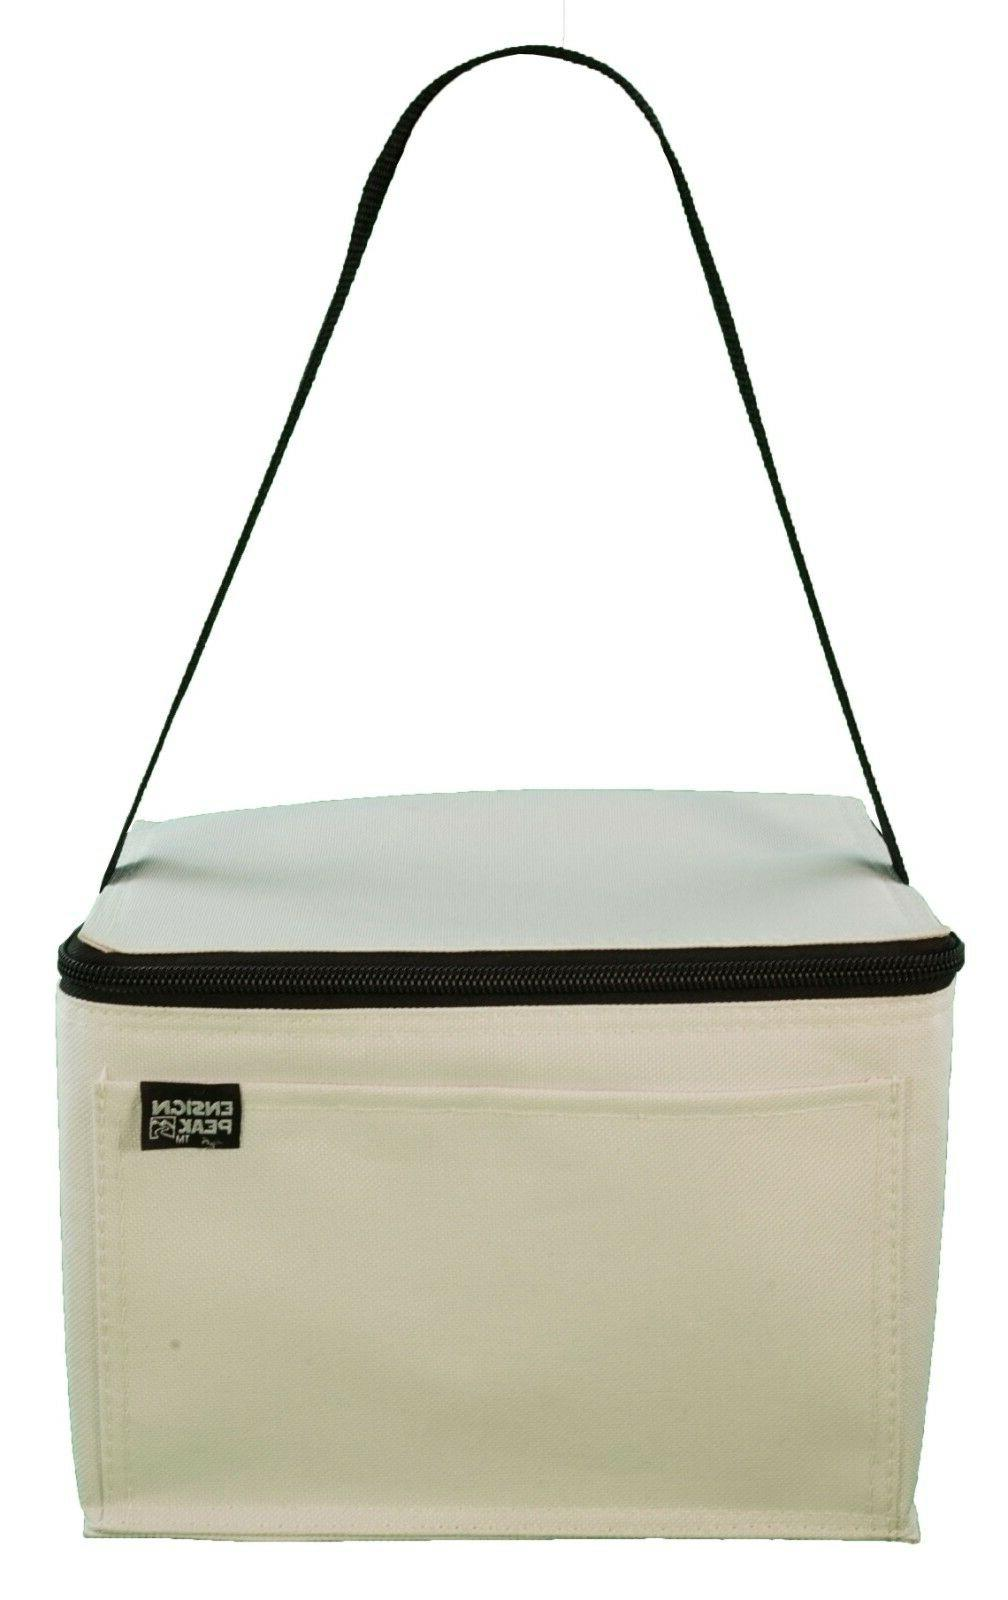 Ensign Peak Basic 6-can Insulated Cooler Proof